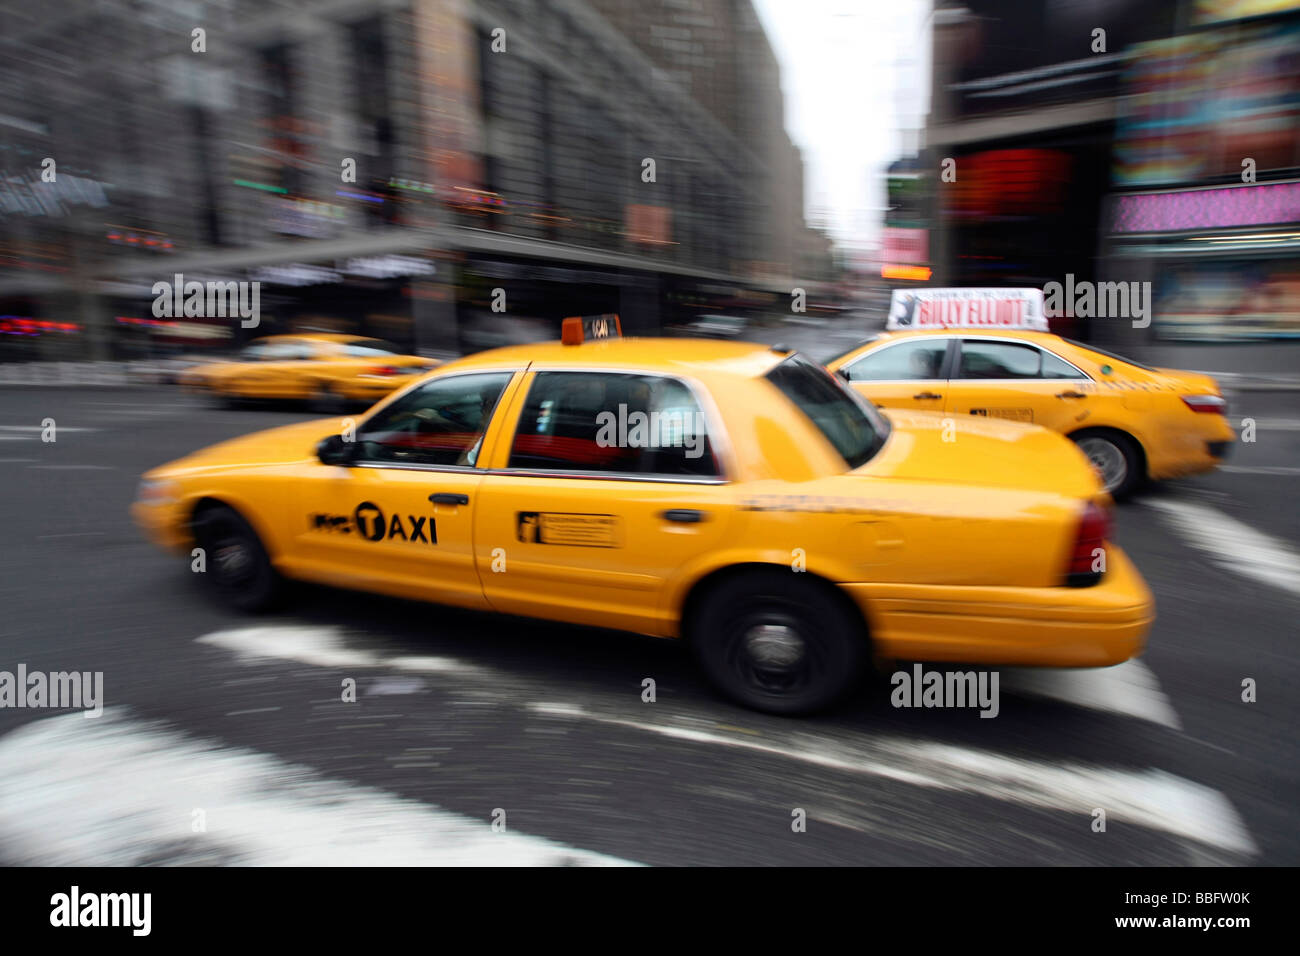 Taxis, yellow cabs, Midtown, Manhattan, New York City, NYC, USA, United States of America - Stock Image